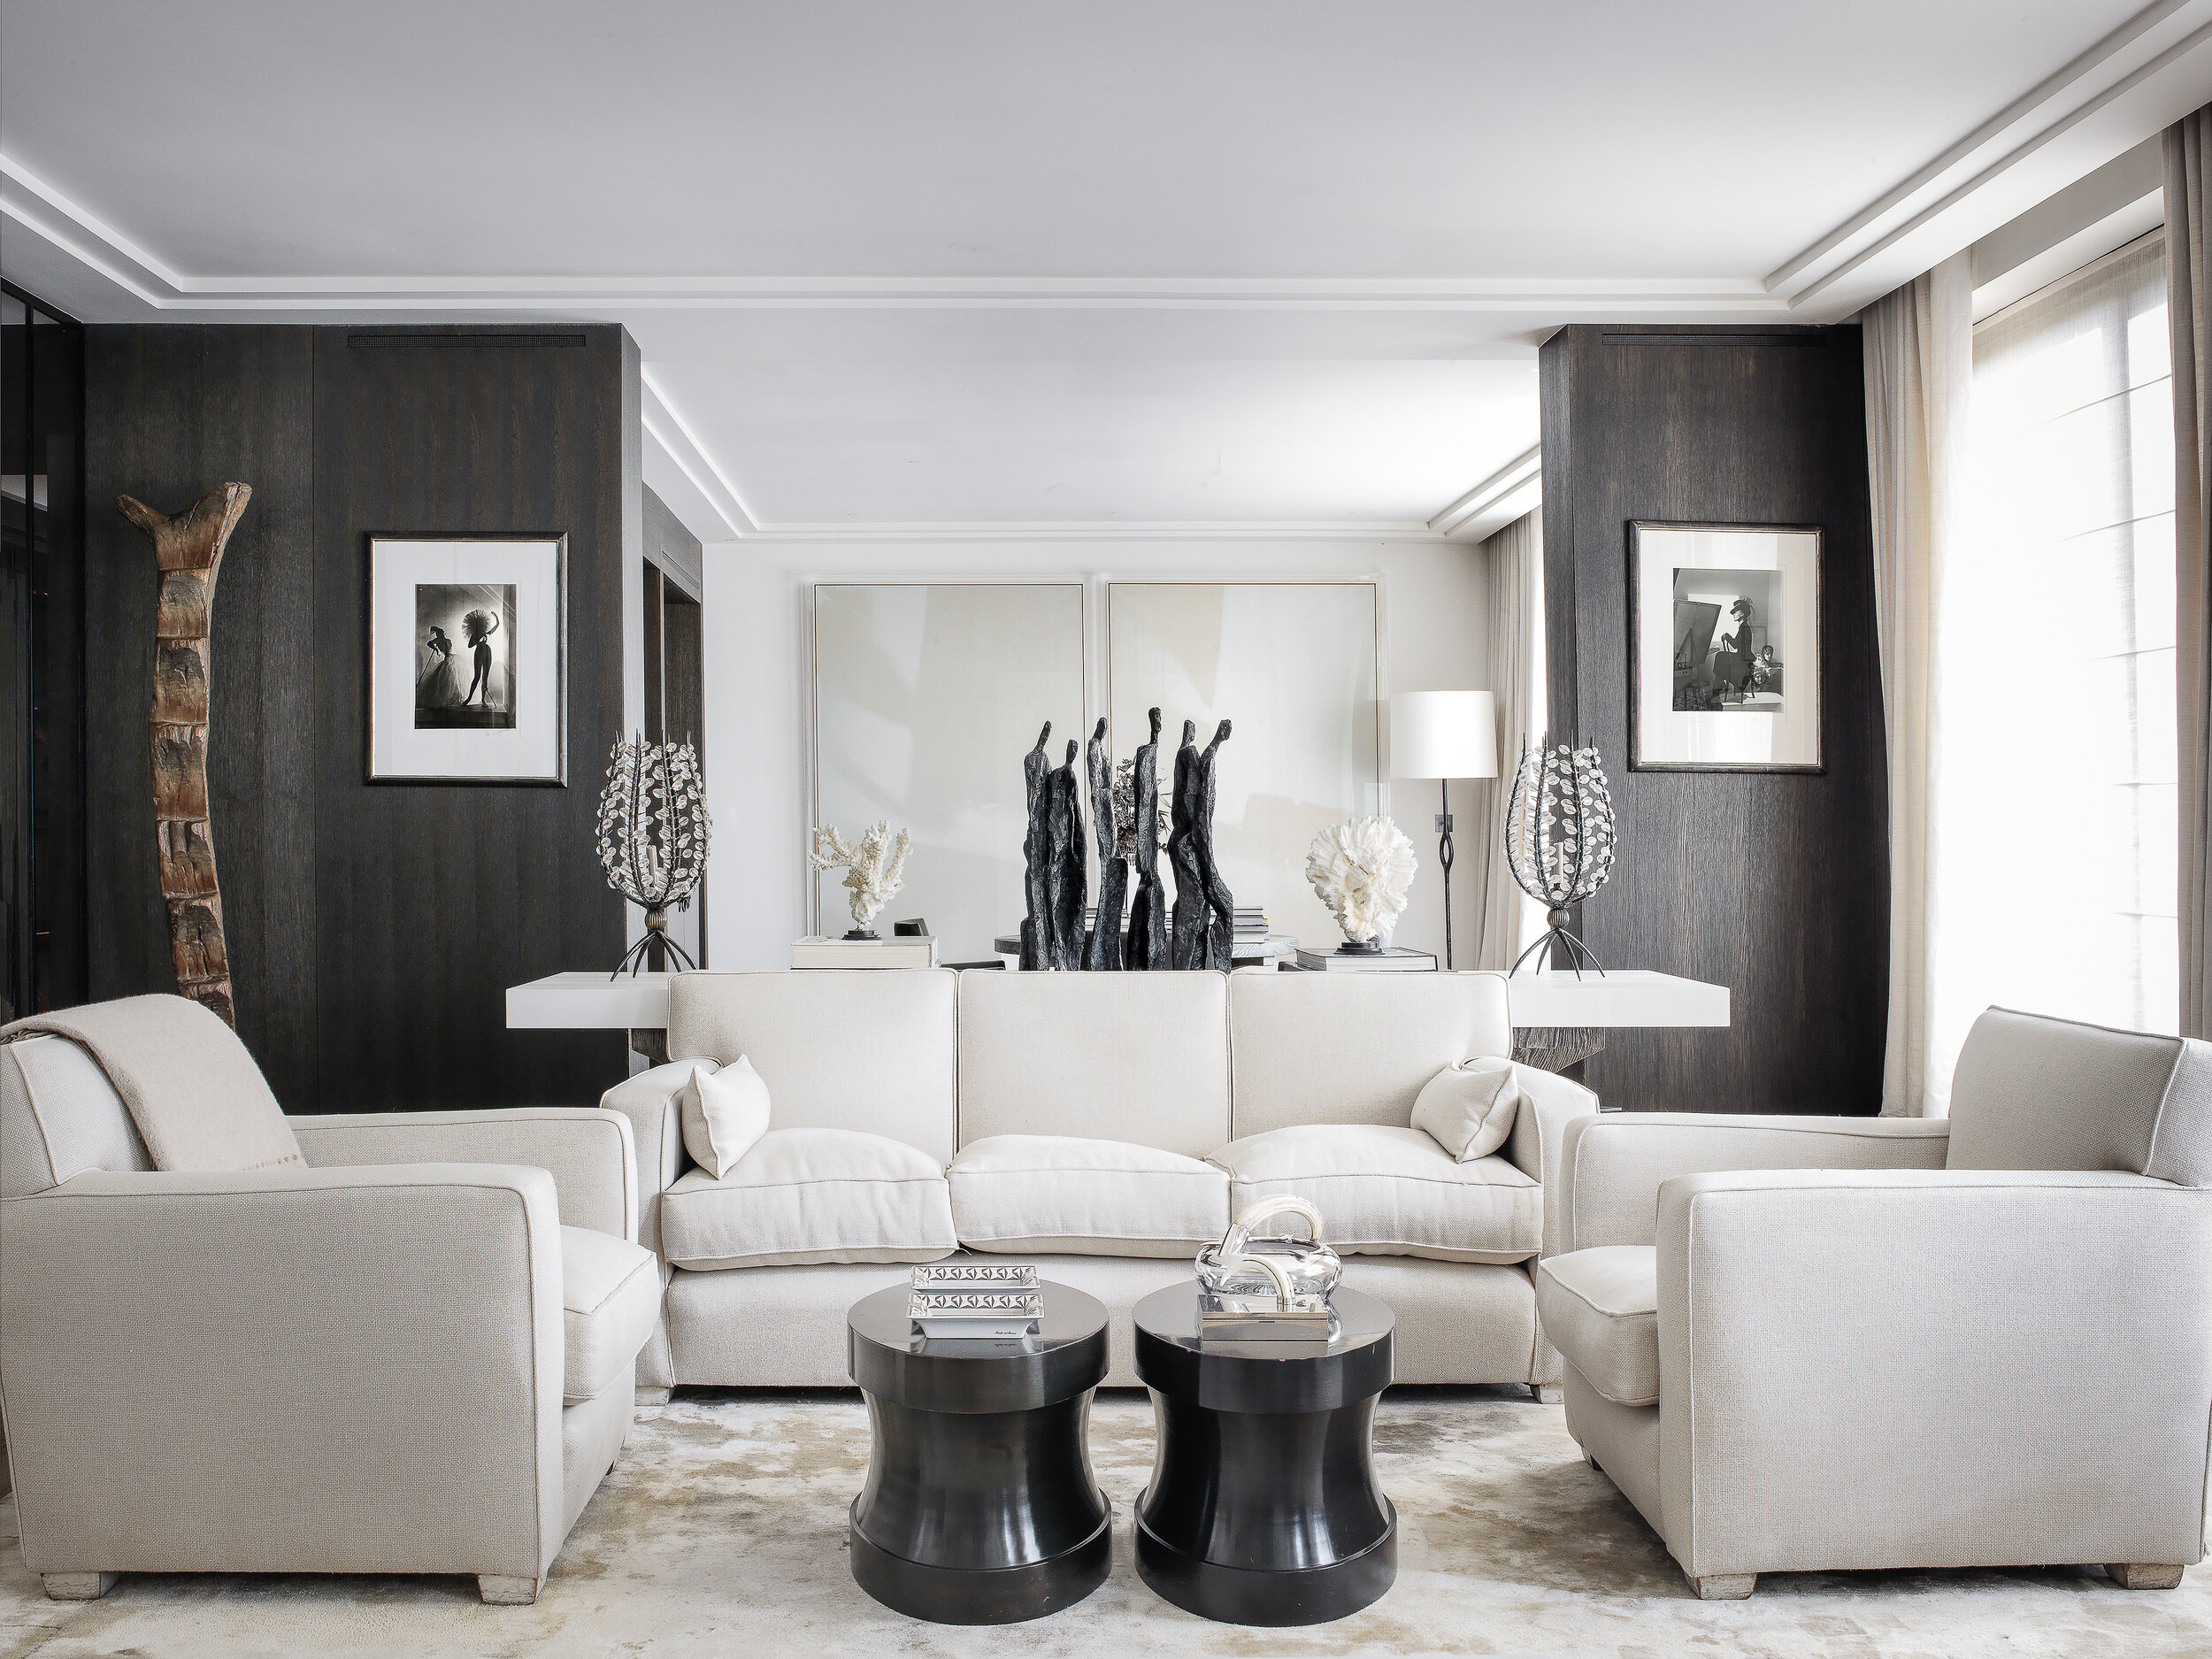 Isabel-Ettedgui-Apartment-Chester-Square-Living-Room-looking-back-to-dining-room.jpg